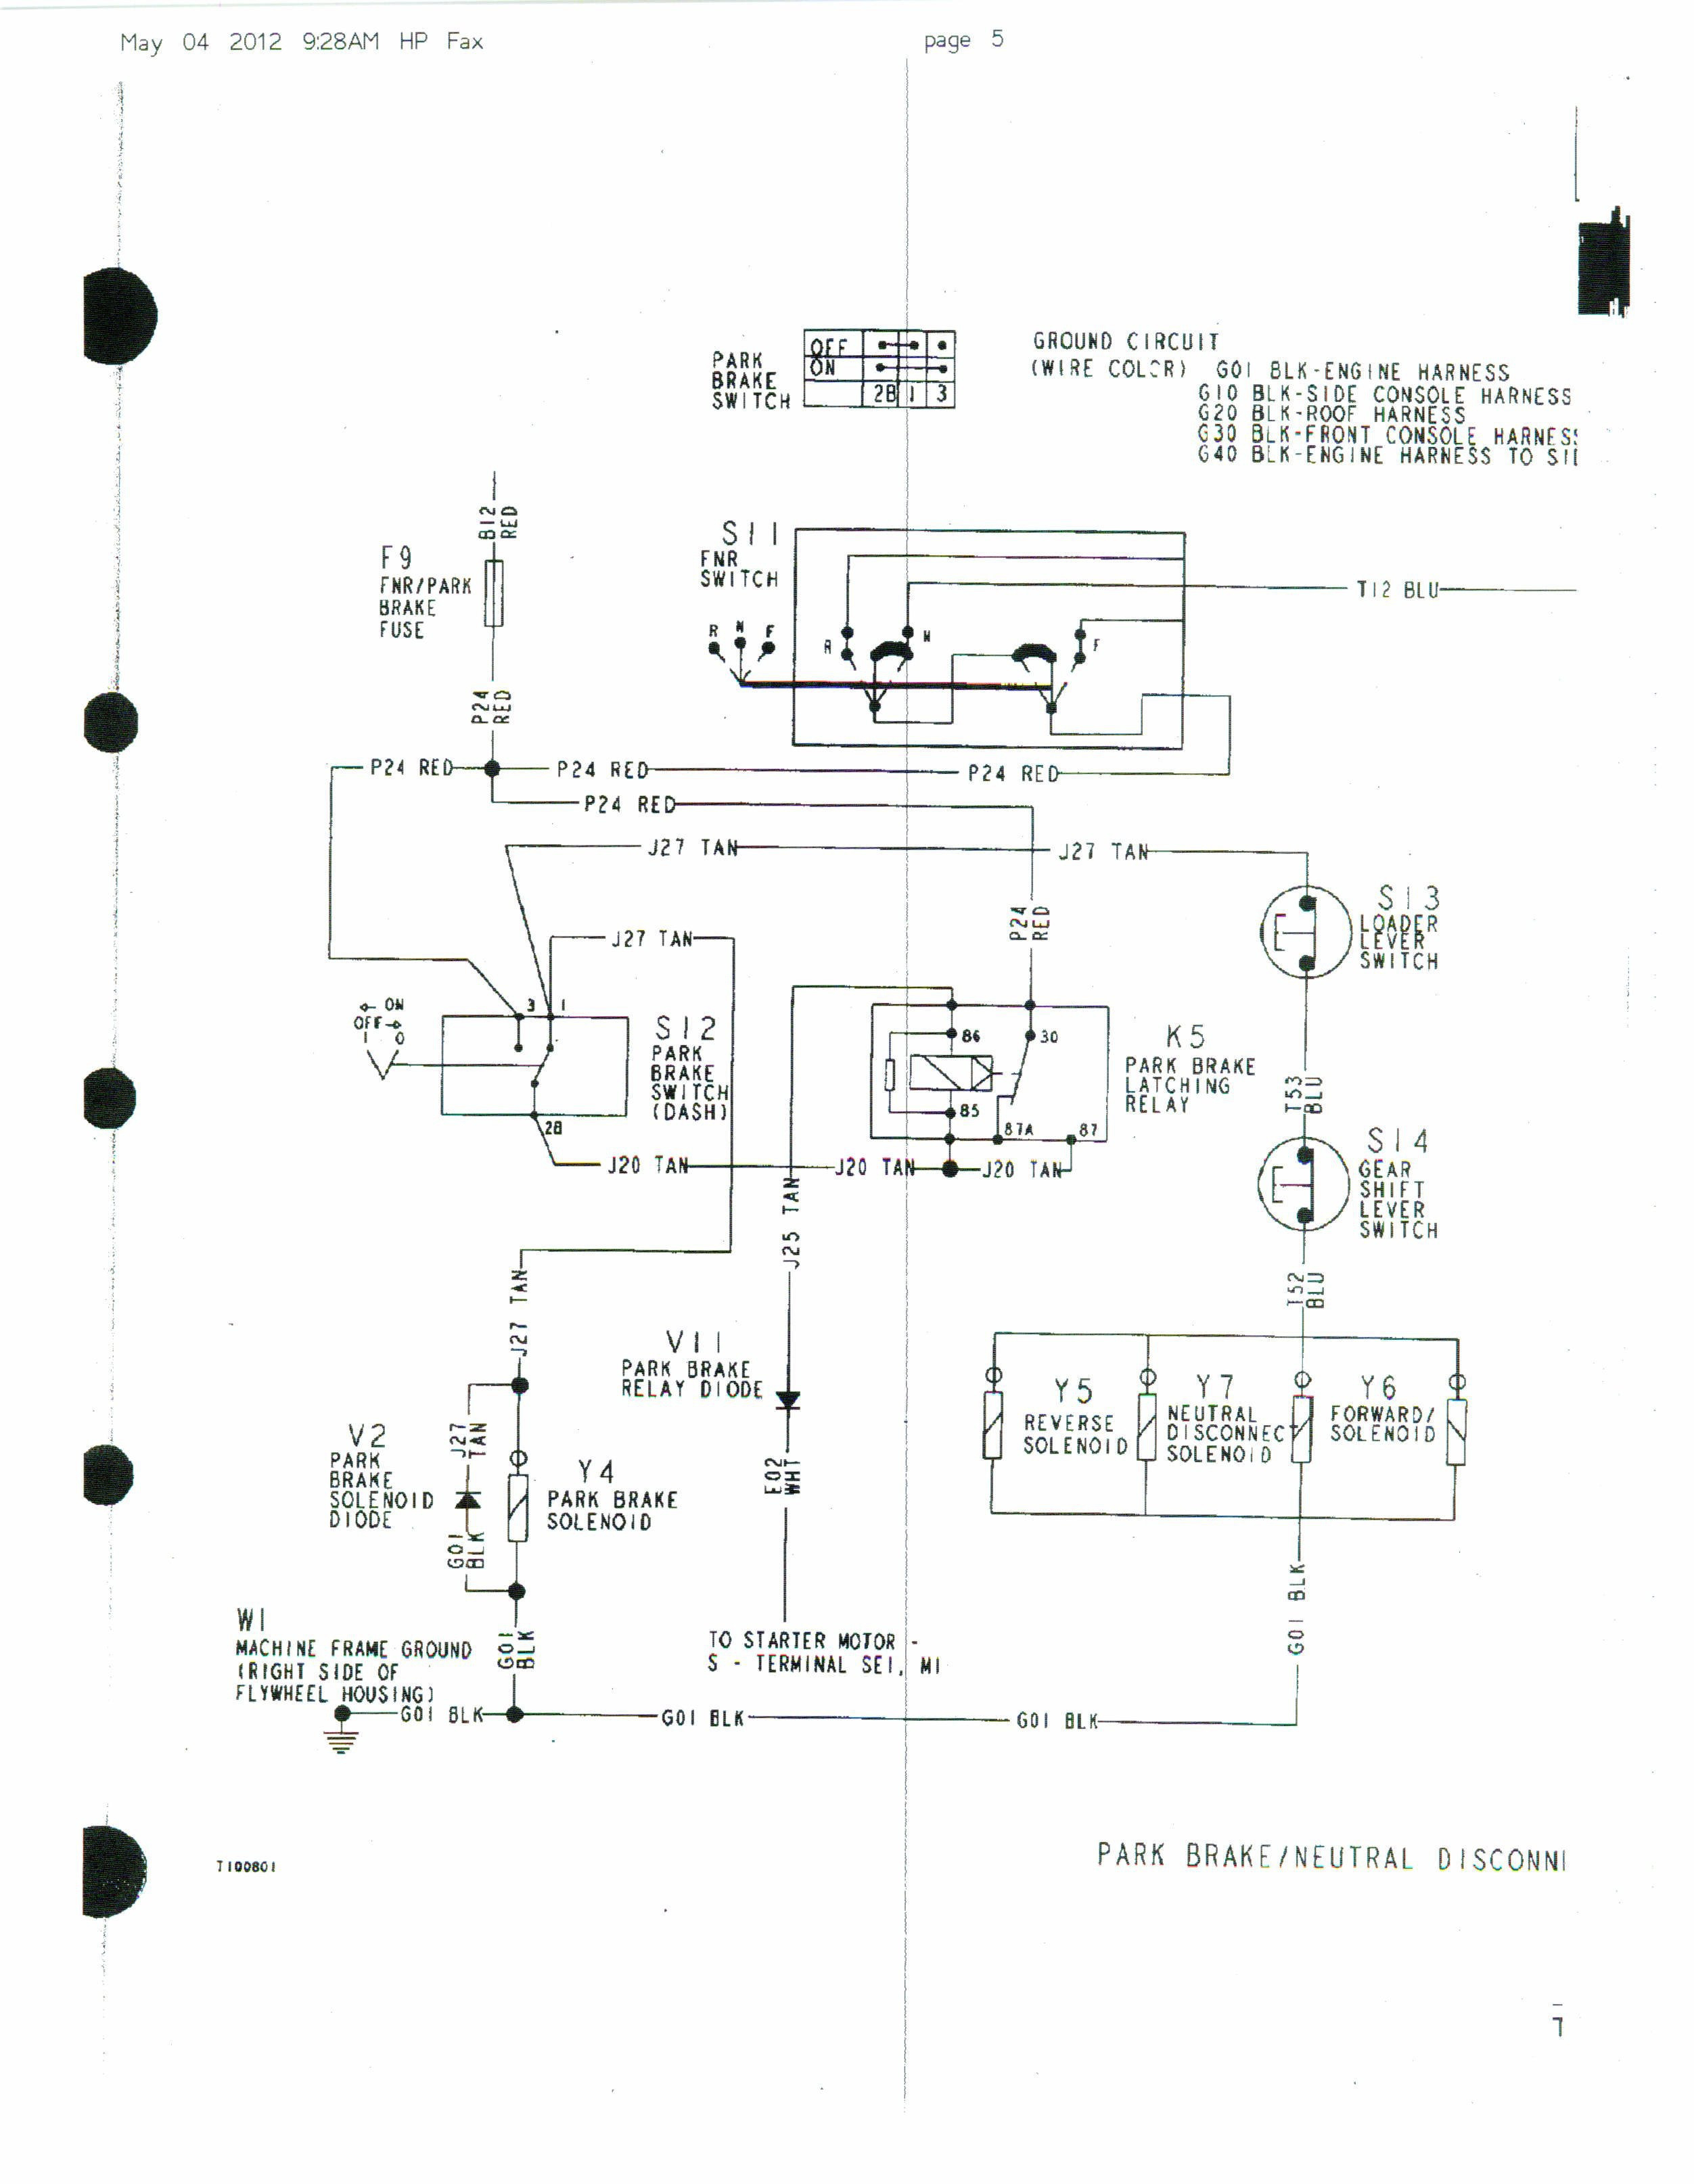 Ups Maintenance Bypass Switch Wiring Diagram Gallery Computer Circuit For Best Pioneer Parking